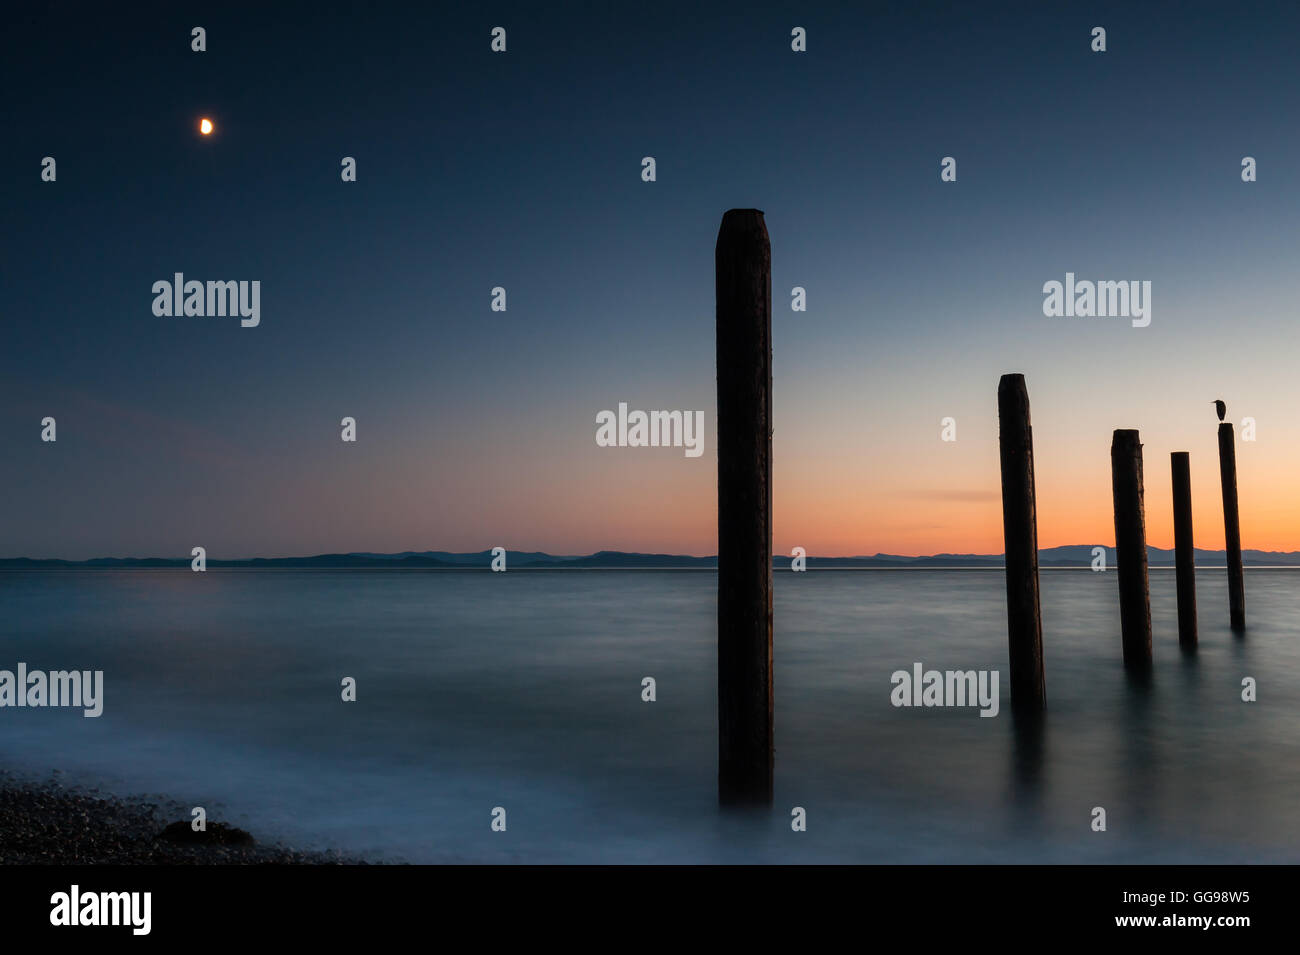 Night picture of Point Roberts pilings and silky water at night time wit seagull on a post - Stock Image